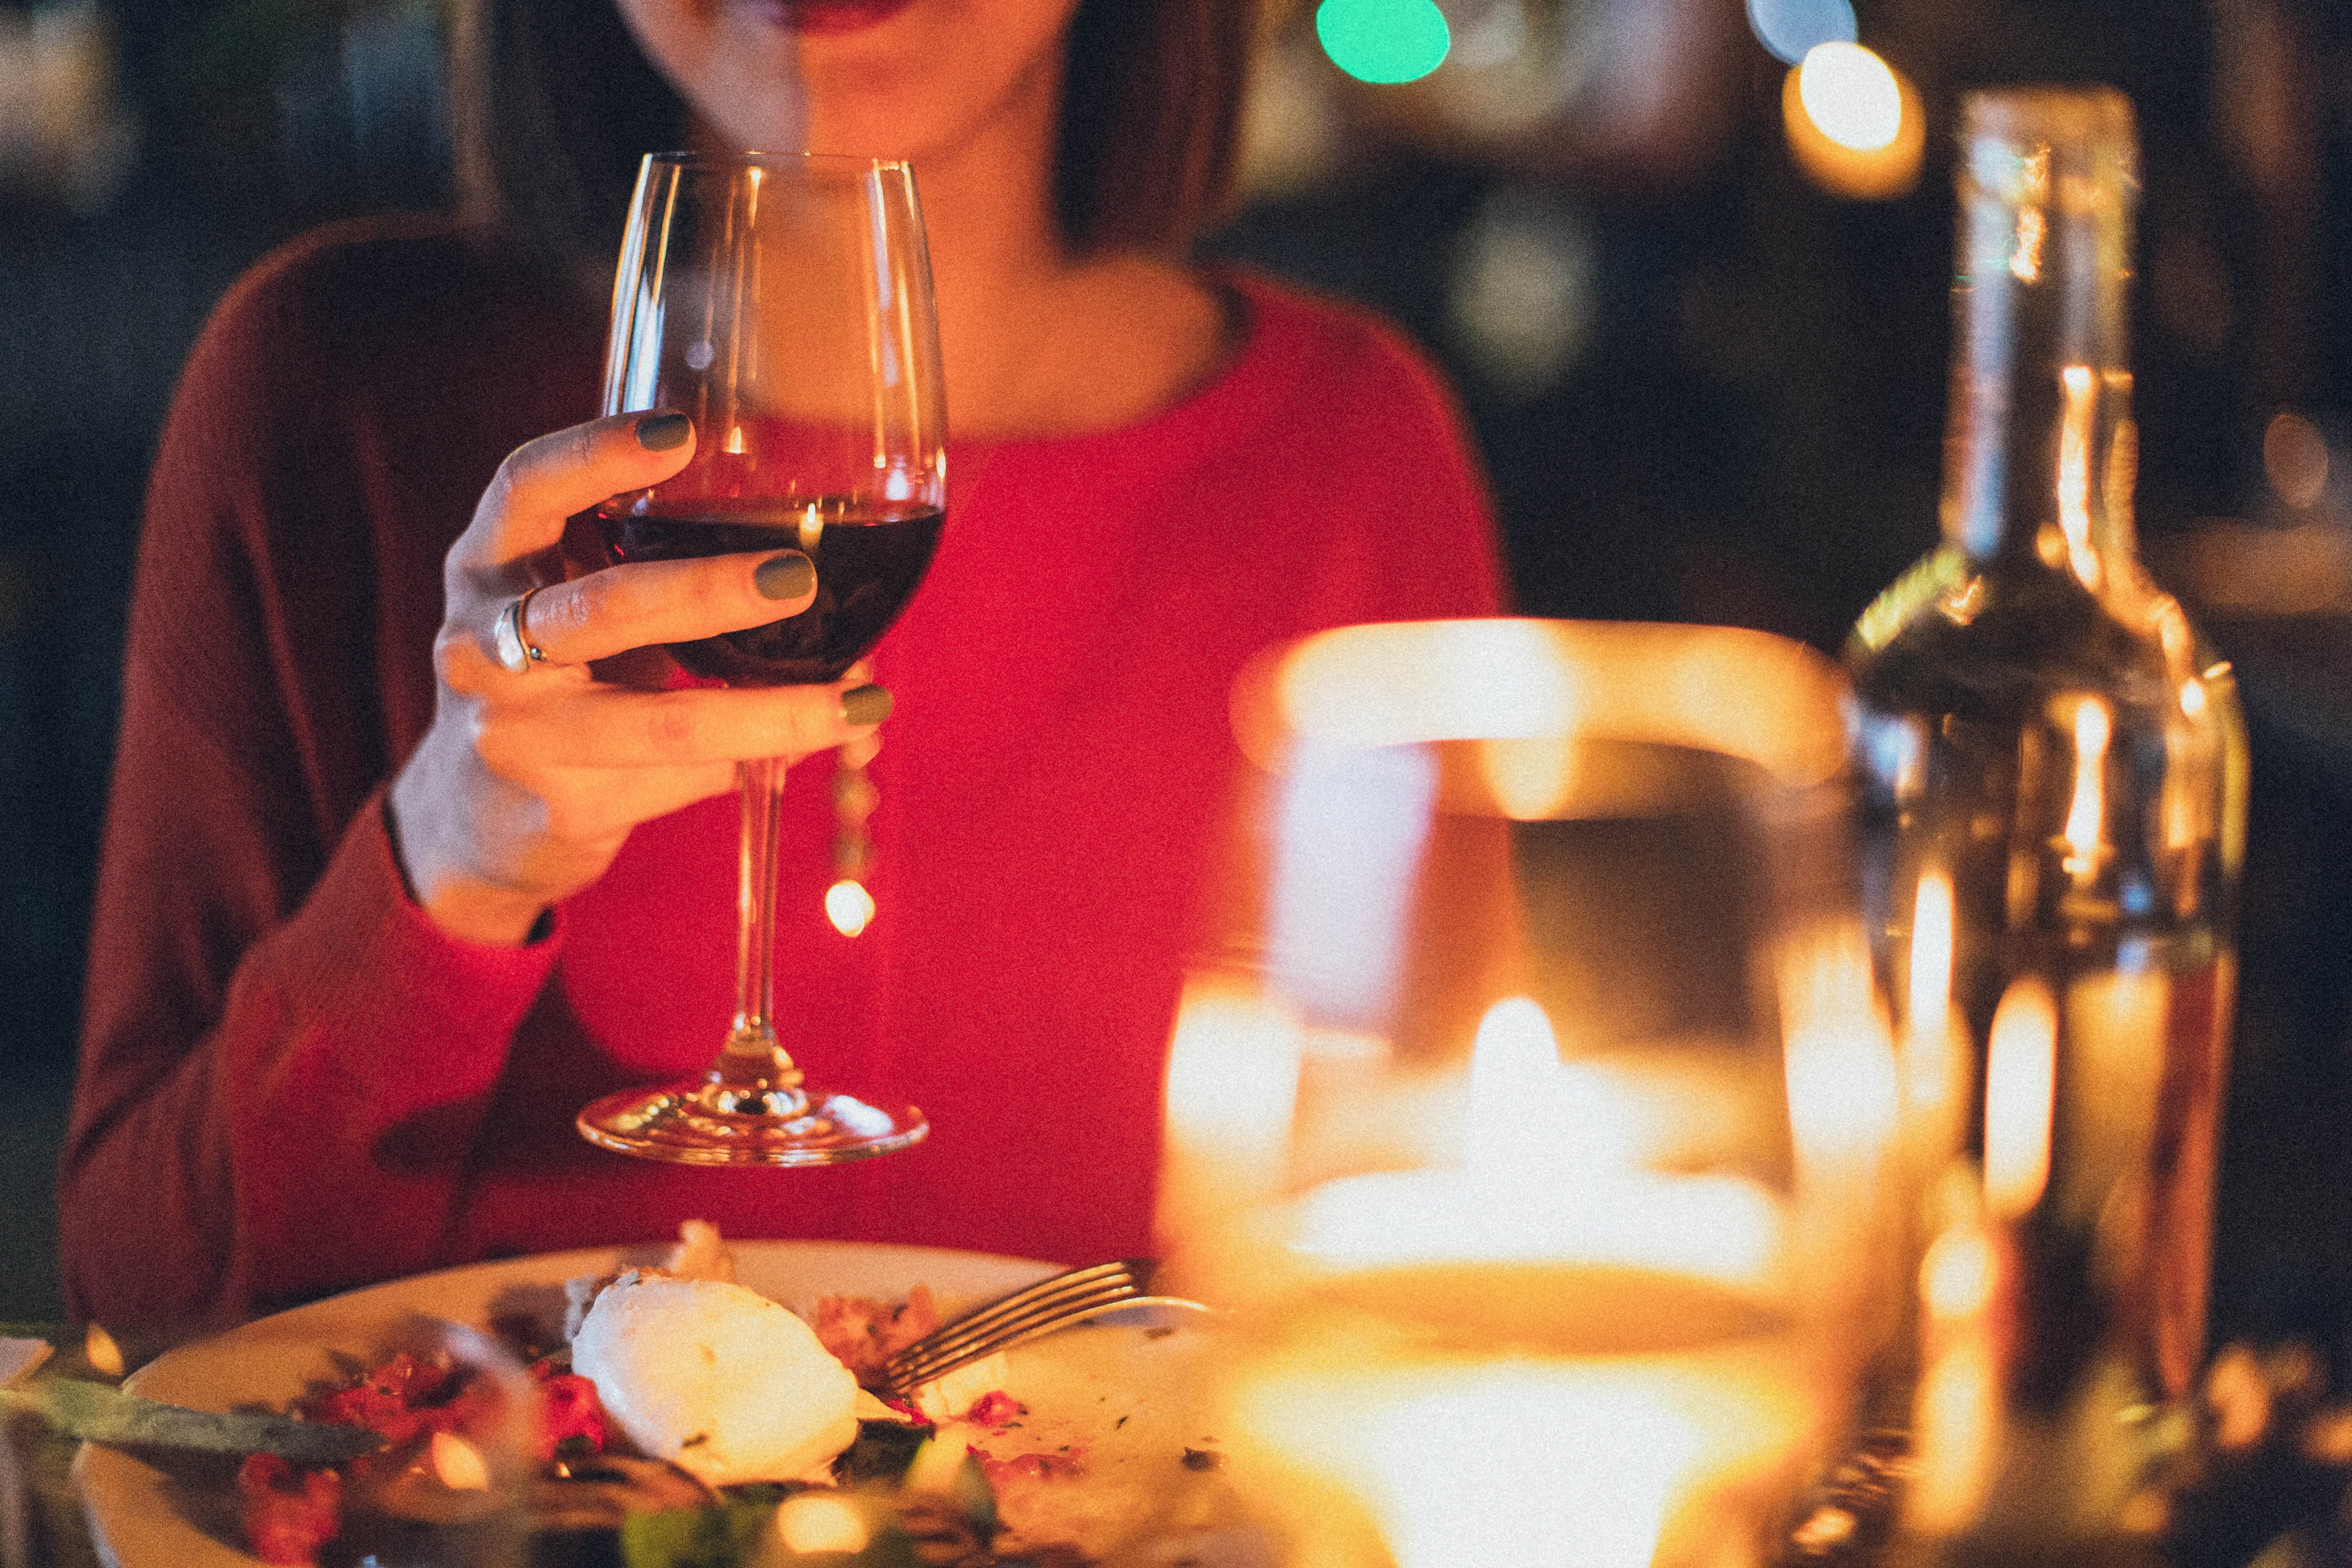 While waiting for her friends at the restaurant, the woman drank wine to while away time.   Photo: Pexels/Elina Sazonova